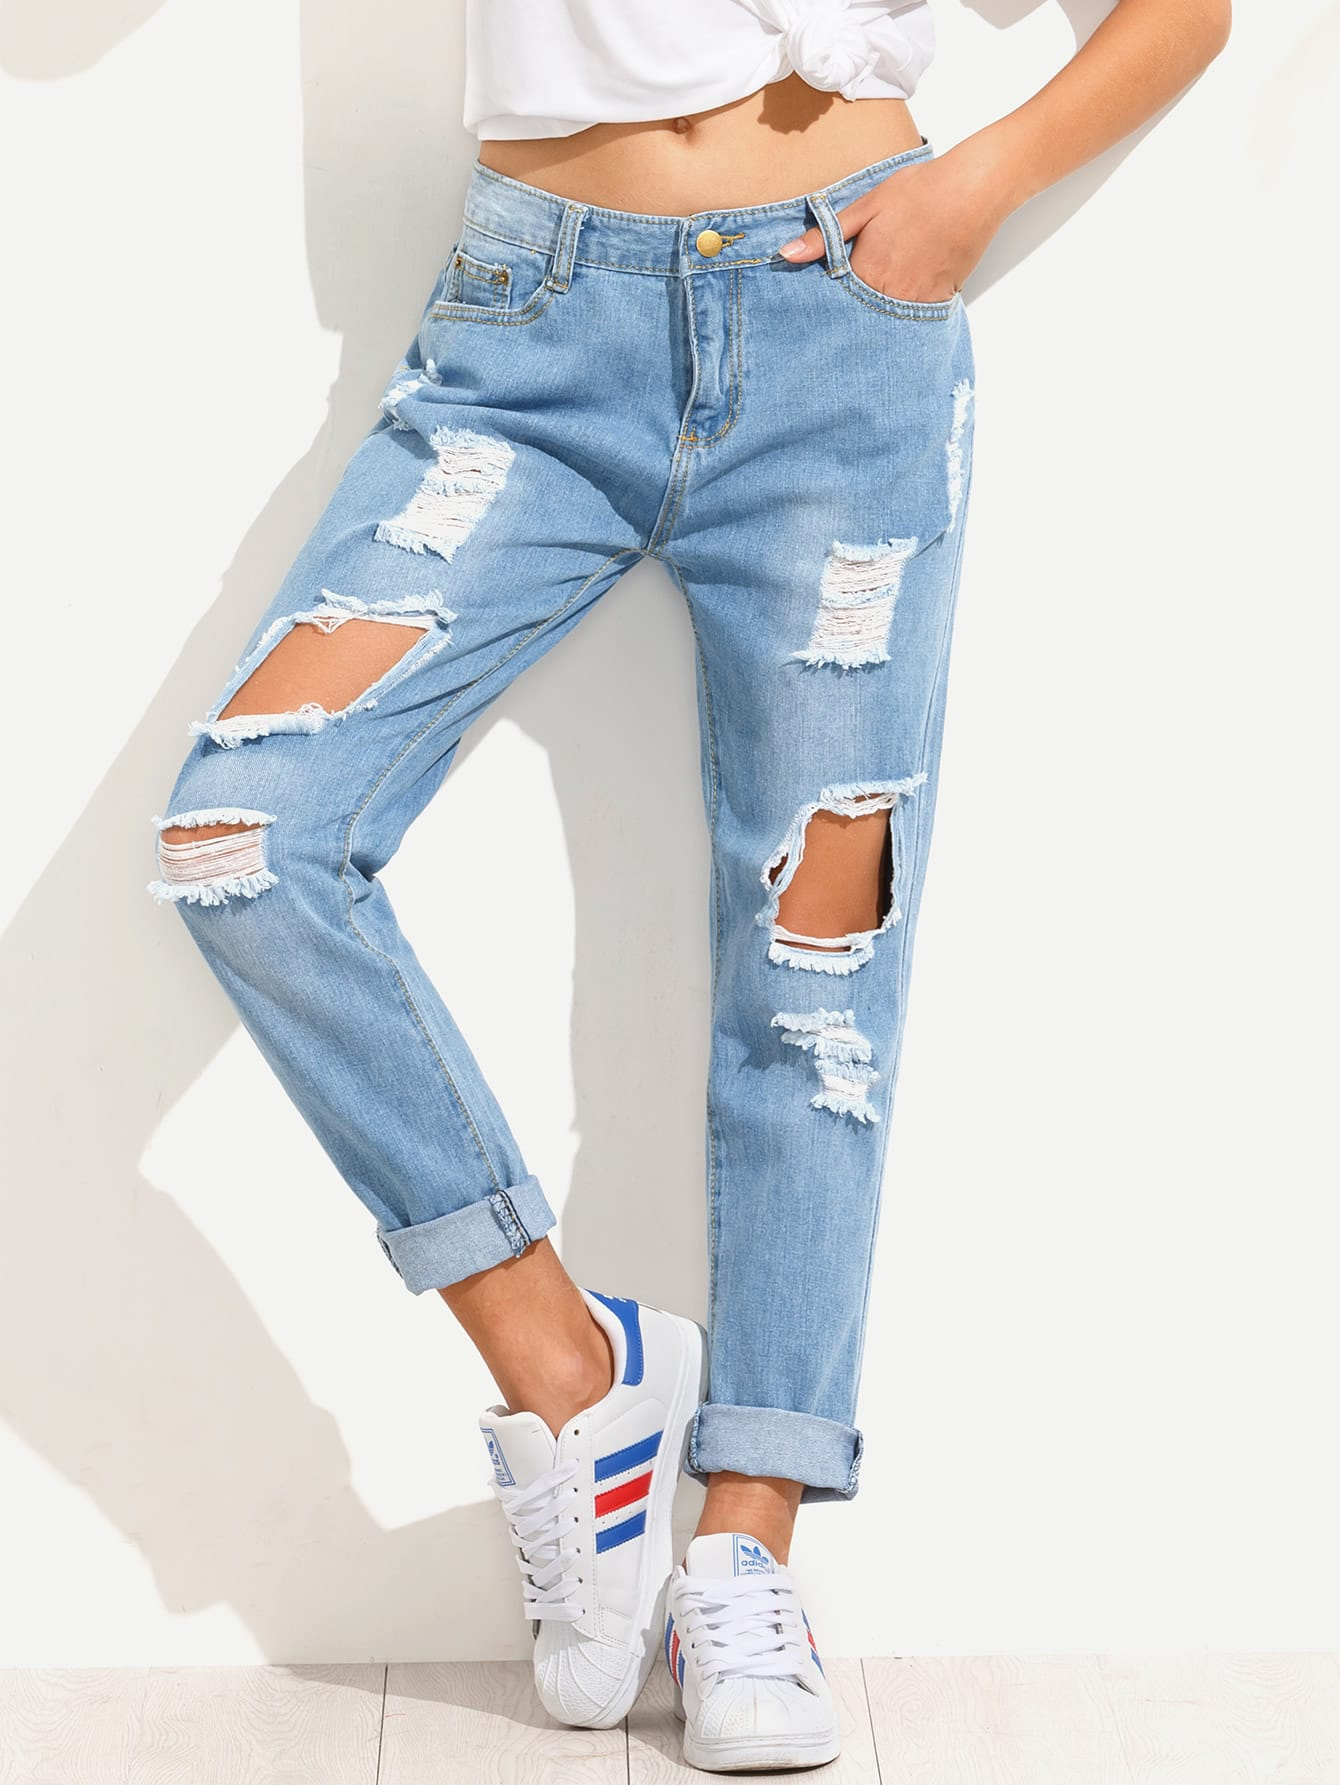 Hollister boyfriend jeans ride low on the hips and feature throwback details for an effortlessly on-trend look. Available in high-rise or low-rise, you can select a pair with the absolute right fit for your body type and individual style.